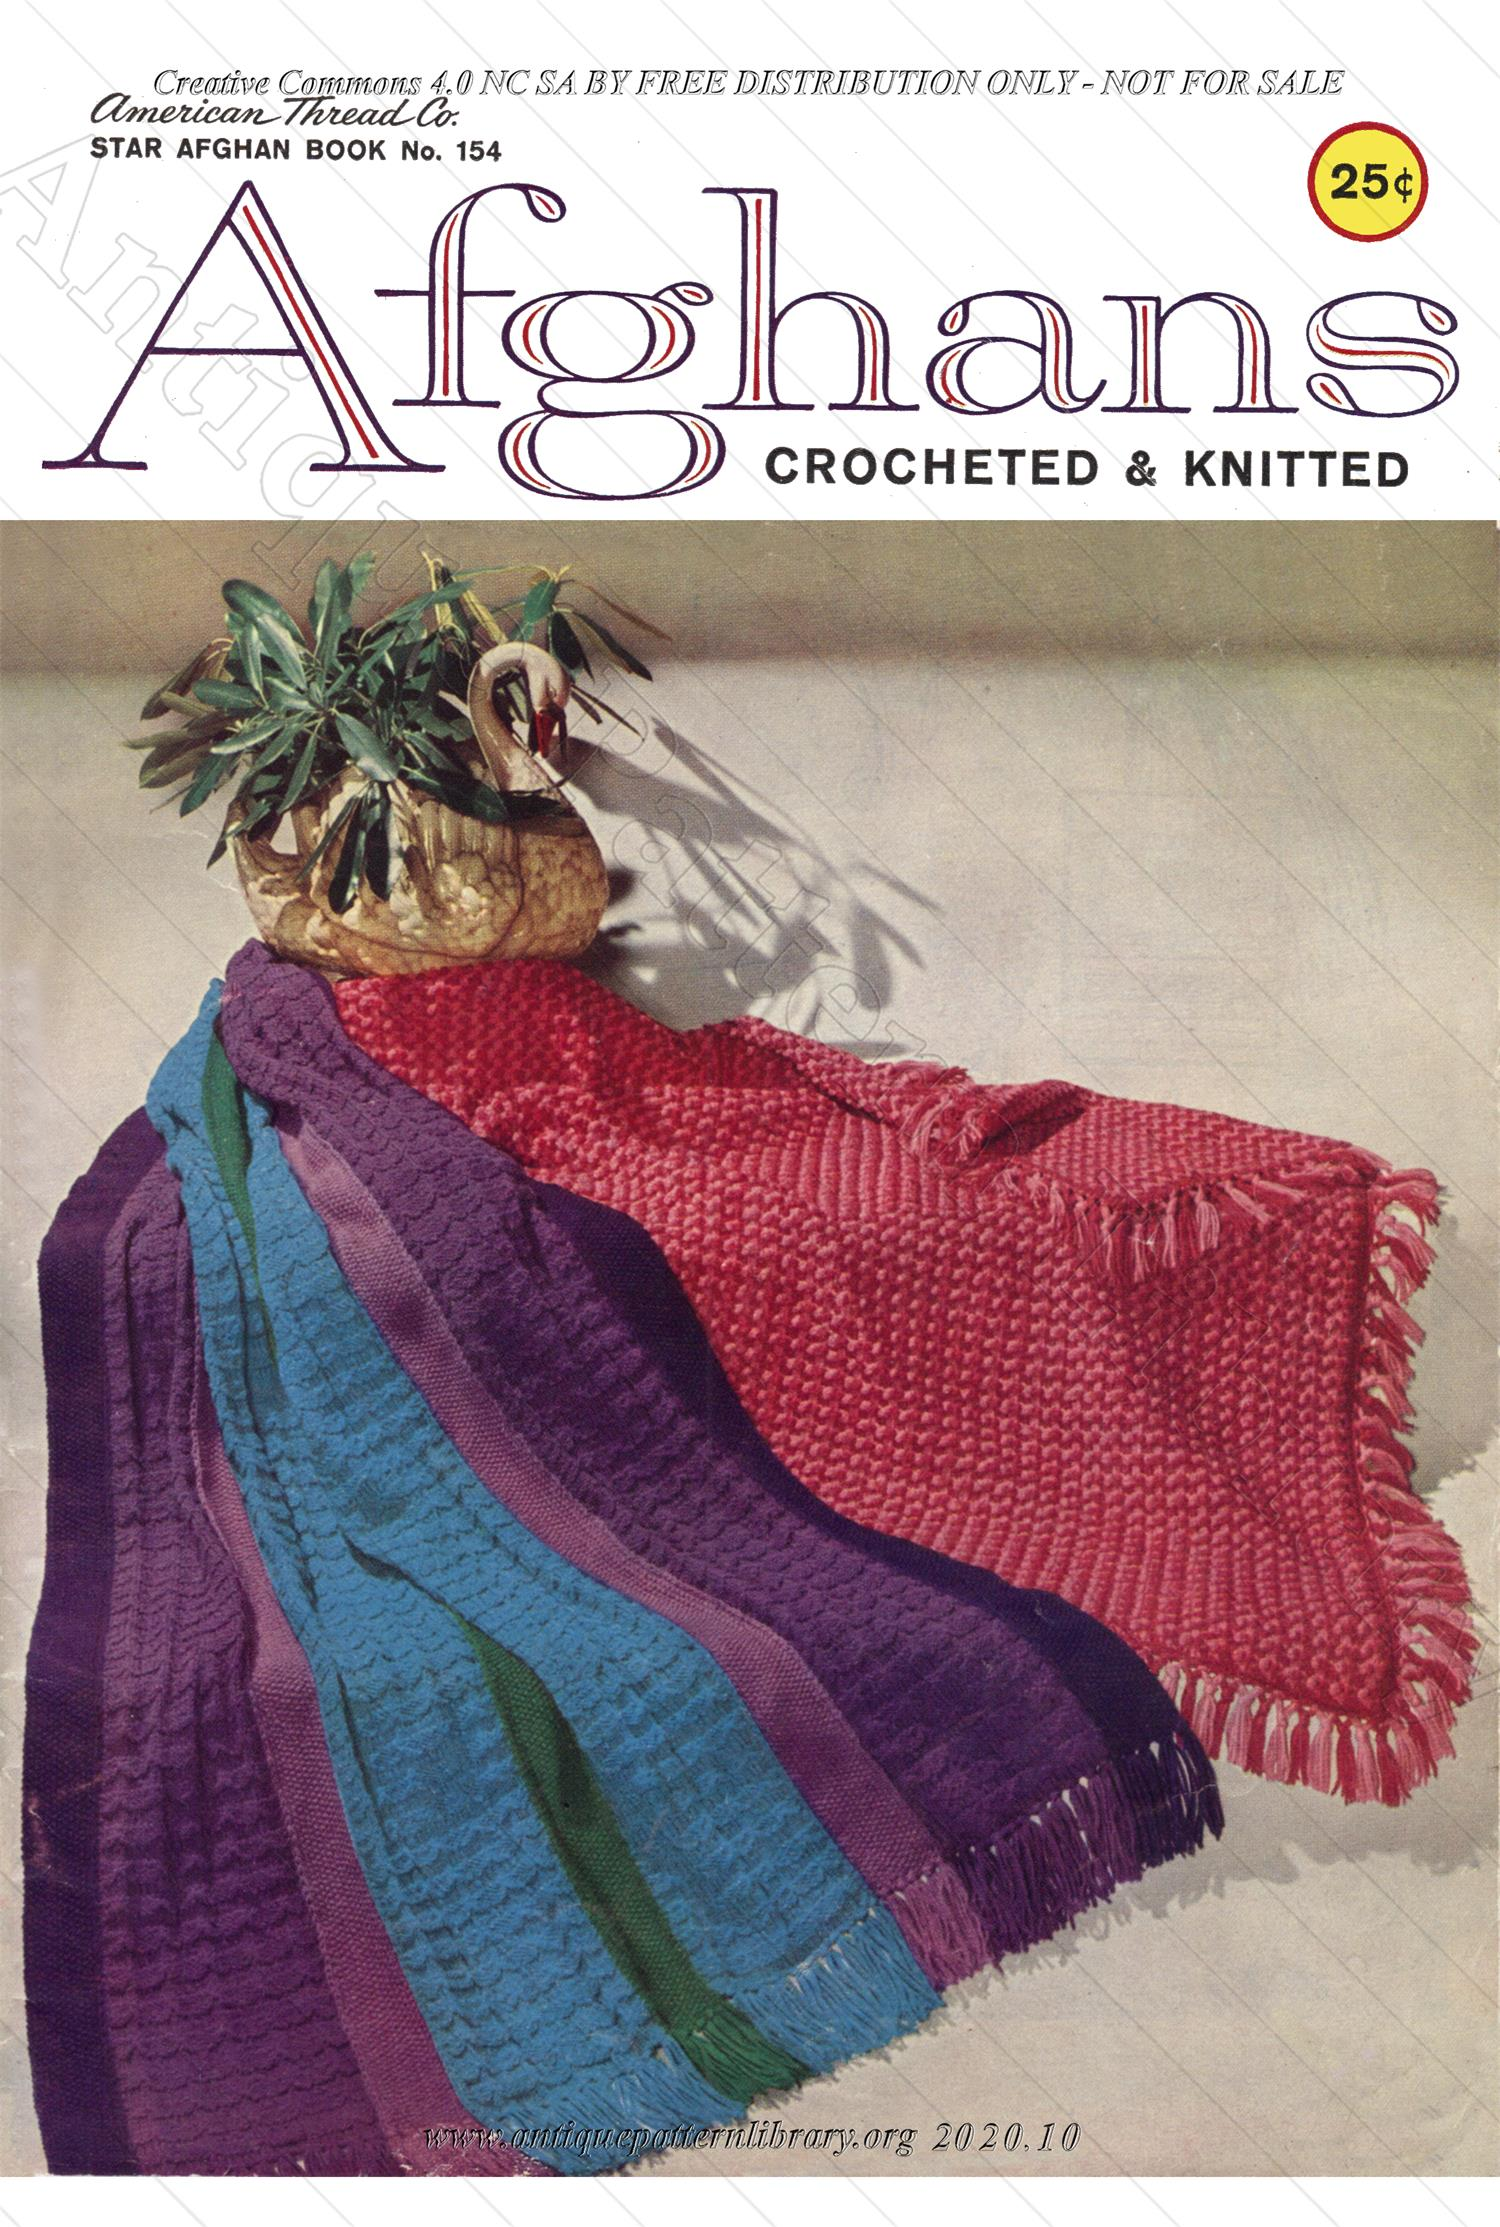 K-SB003 Afghans, Crocheted & Knitted